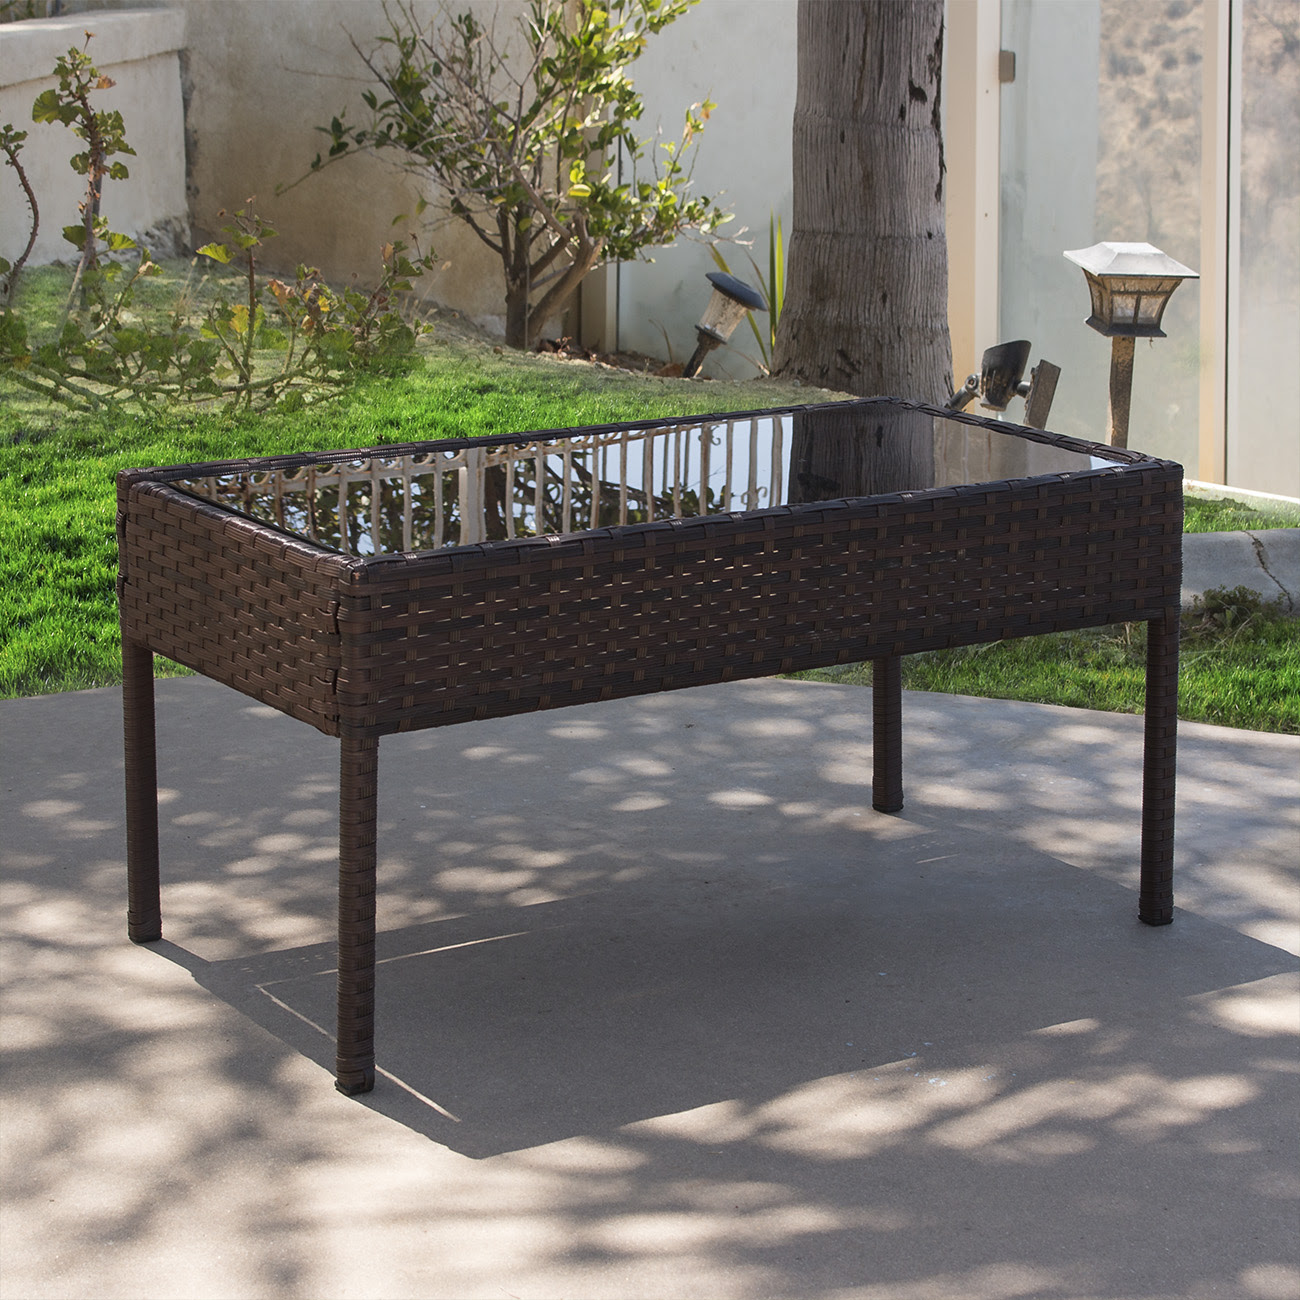 Durable 4PC Patio Furniture Set Cushioned Outdoor Wicker ...